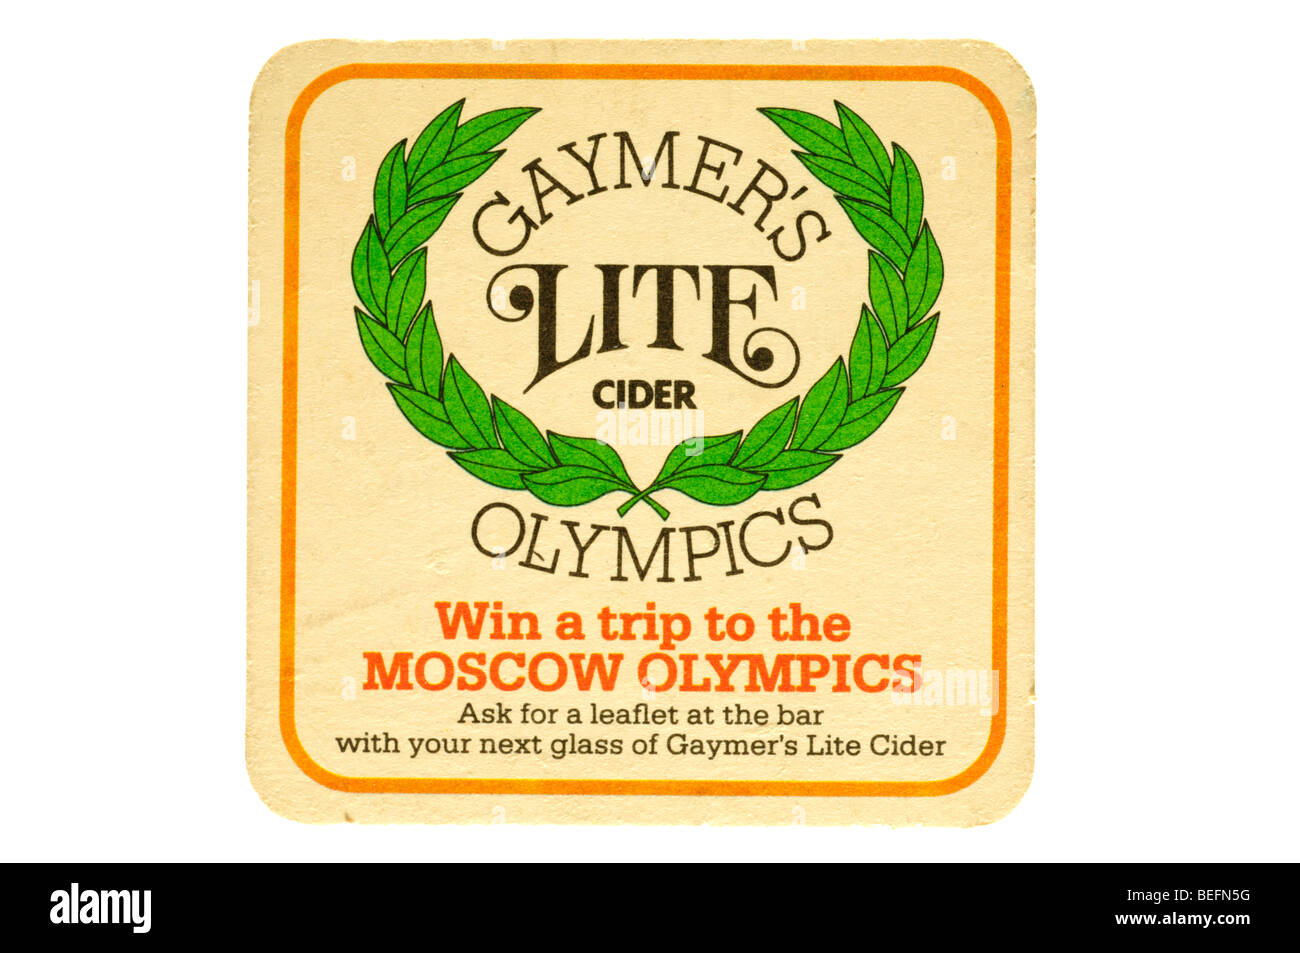 beer mat gaymers lite cider olympics win a trip to the moscow olympics - Stock Image